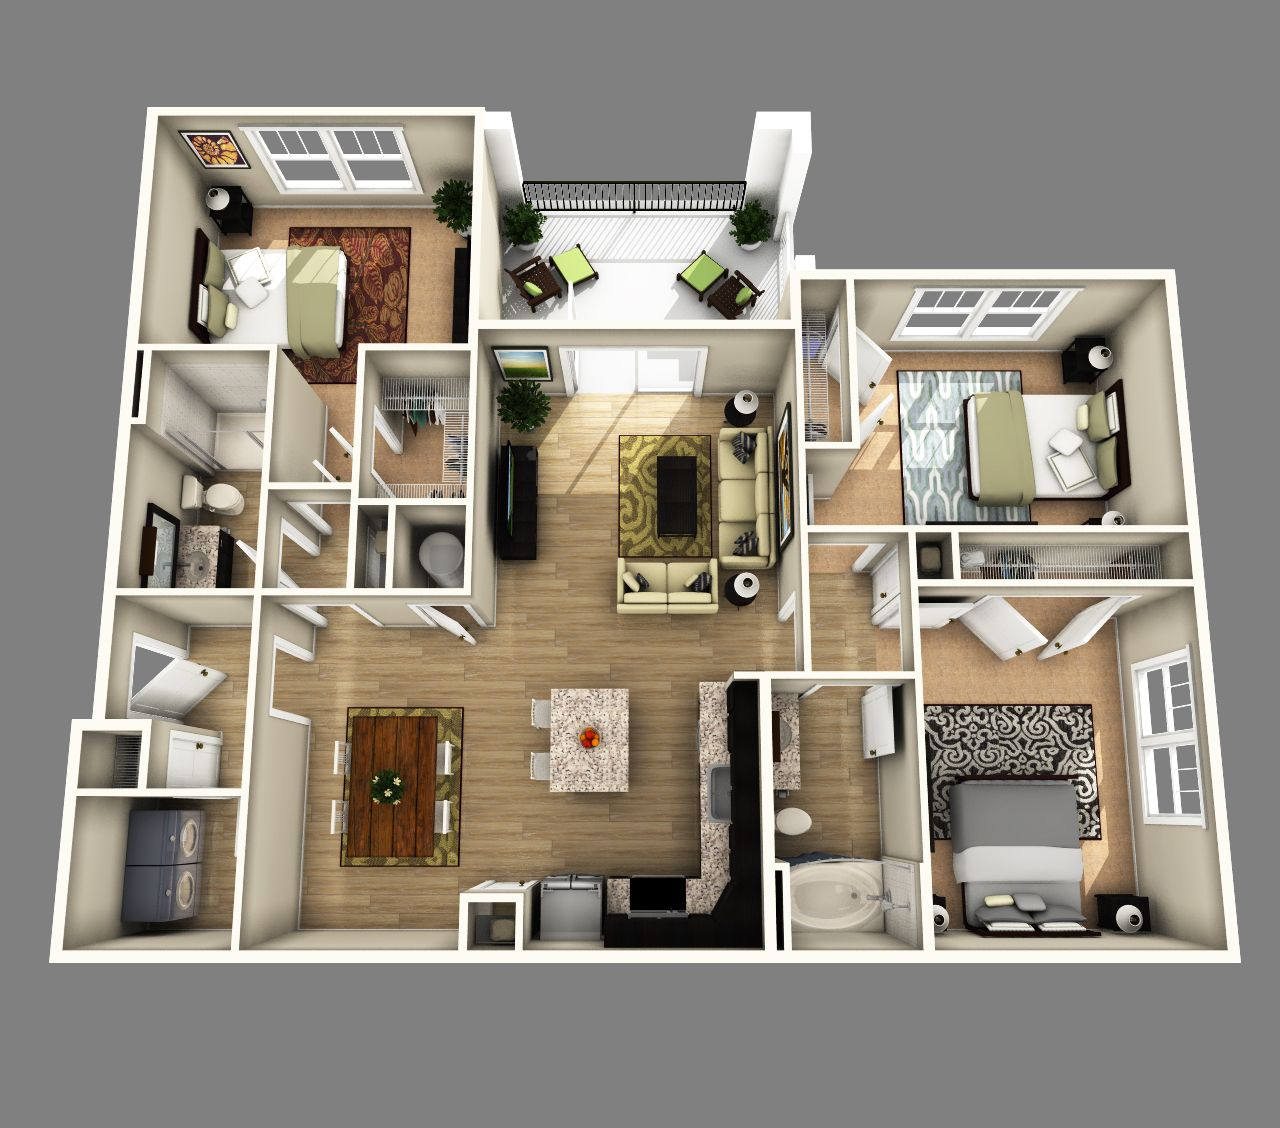 3 bedrooms apartments for 3 bedroom house layout ideas